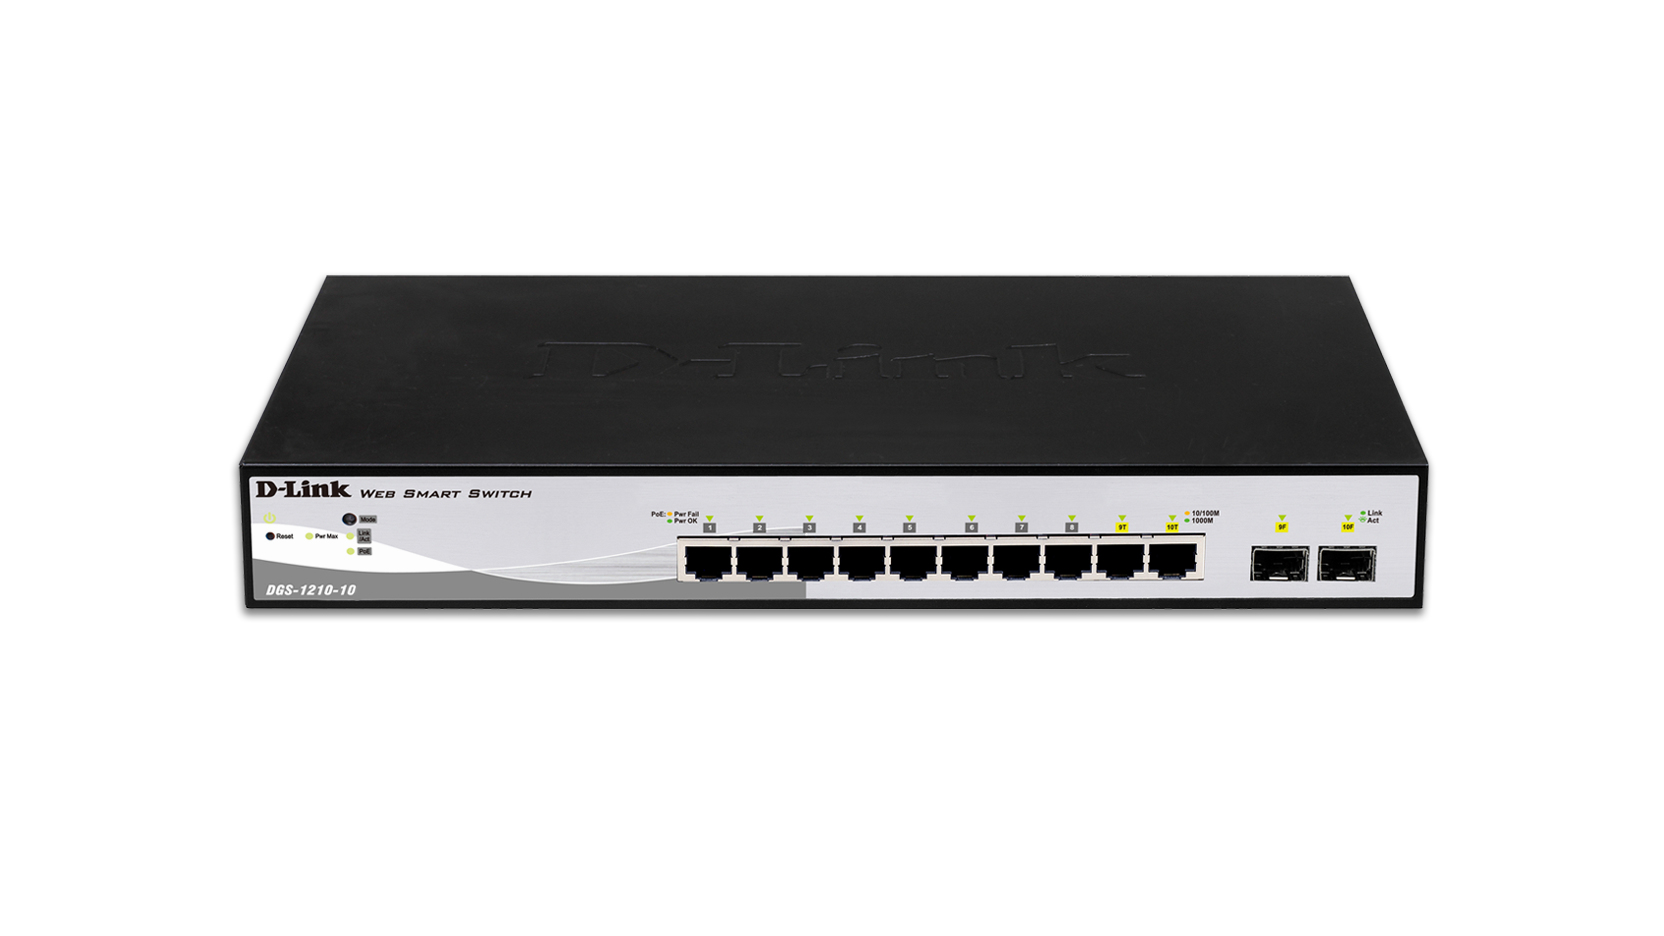 D-LINK DGS-1210-10 MANAGED NETWORK SWITCH L2 GIGABIT ETHERNET 1U BLACK, GREY